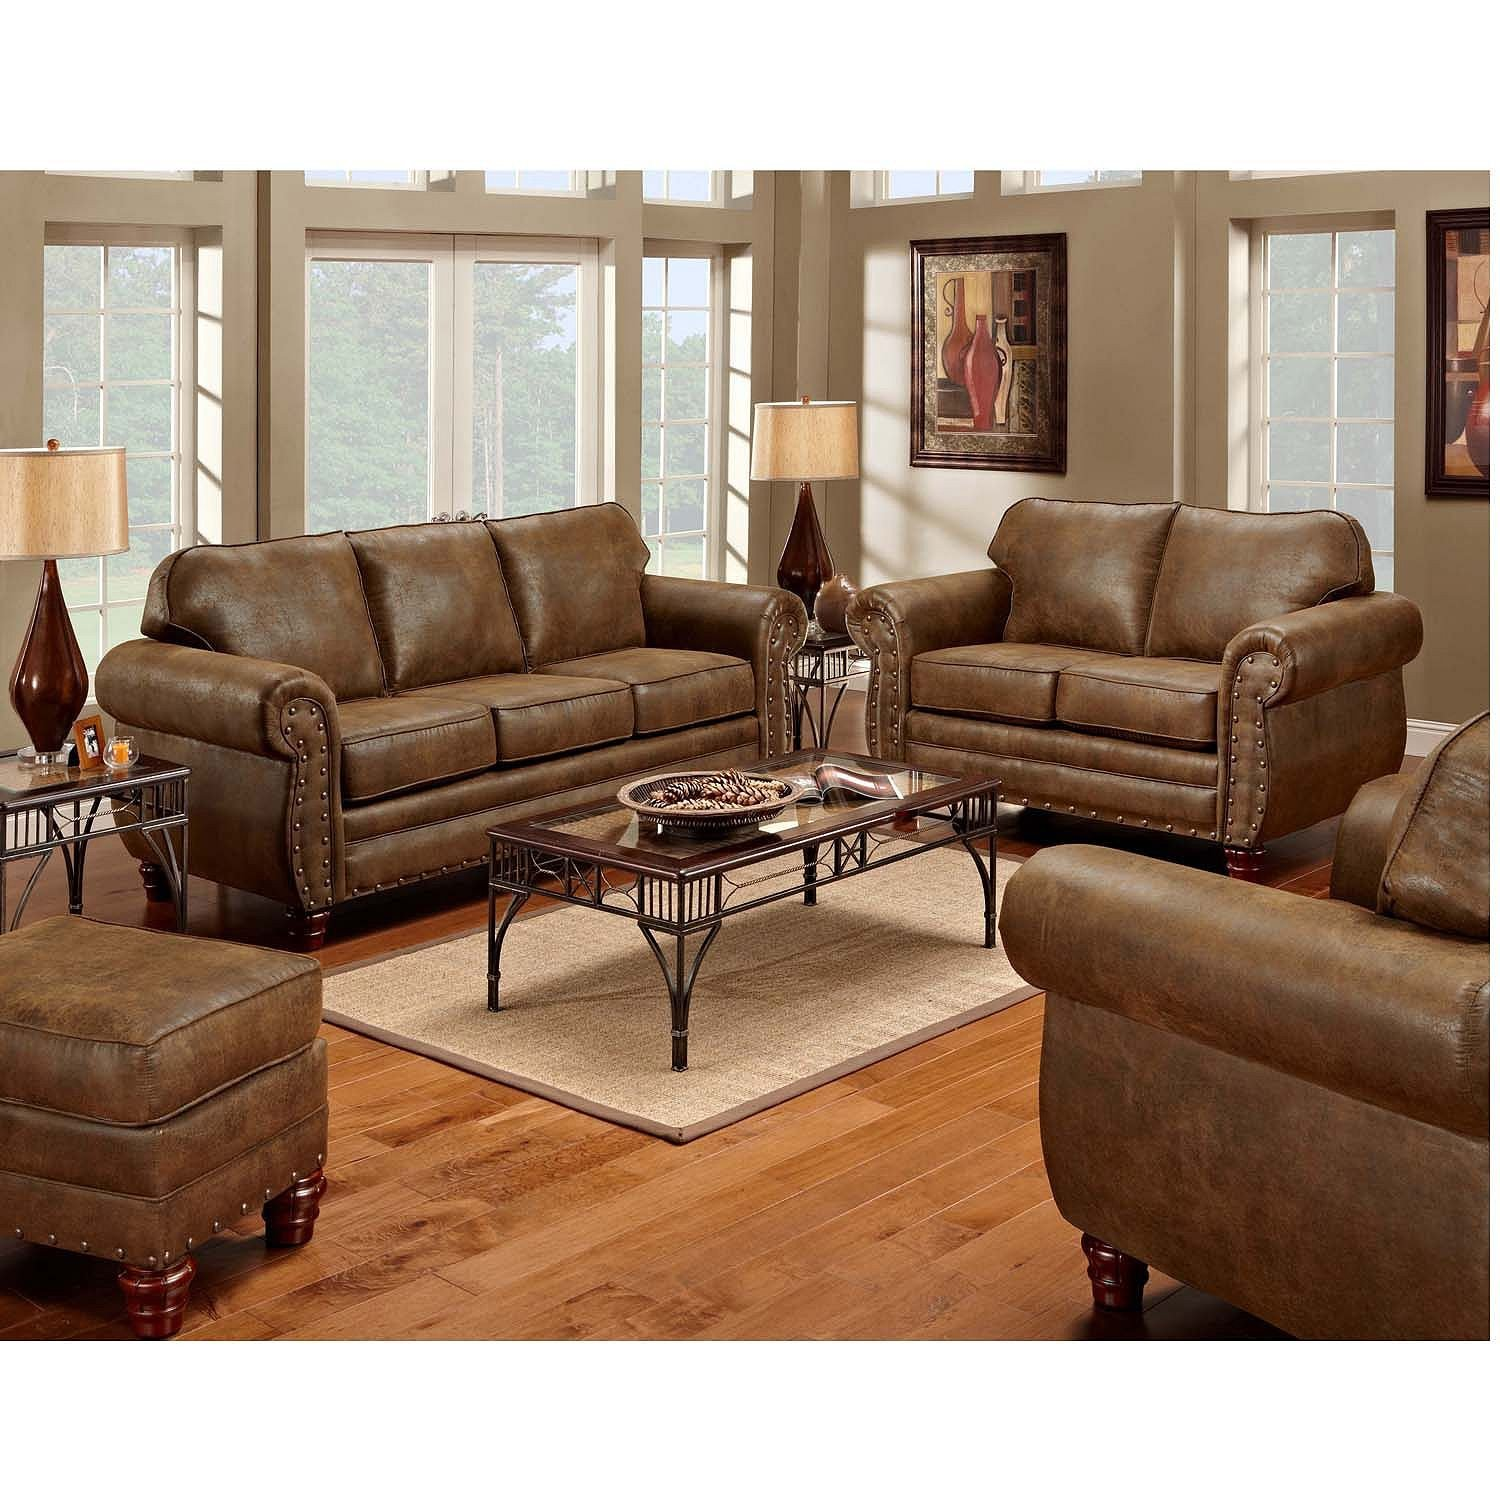 Comfortable Chairs Living Room Lovely top 4 fortable Chairs for Living Room